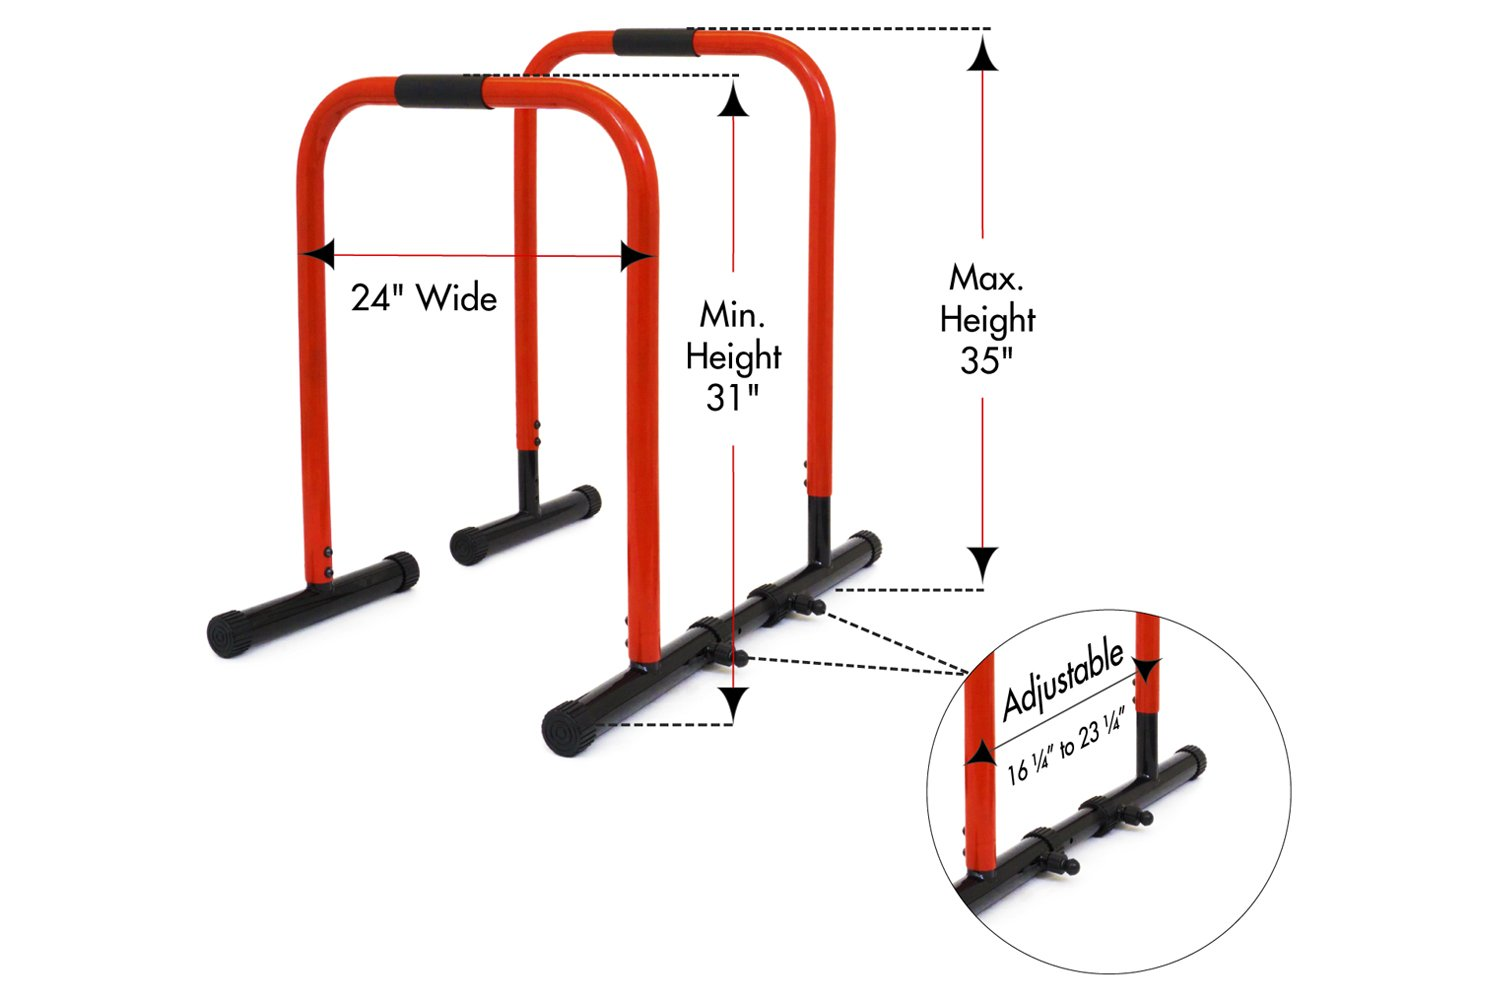 ProsourceFit Dip Stand Station, Heavy Duty Ultimate Body Press Bar with Safety Connector for Tricep Dips, Pull-Ups, Push-Ups, L-Sits, Red by ProsourceFit (Image #2)